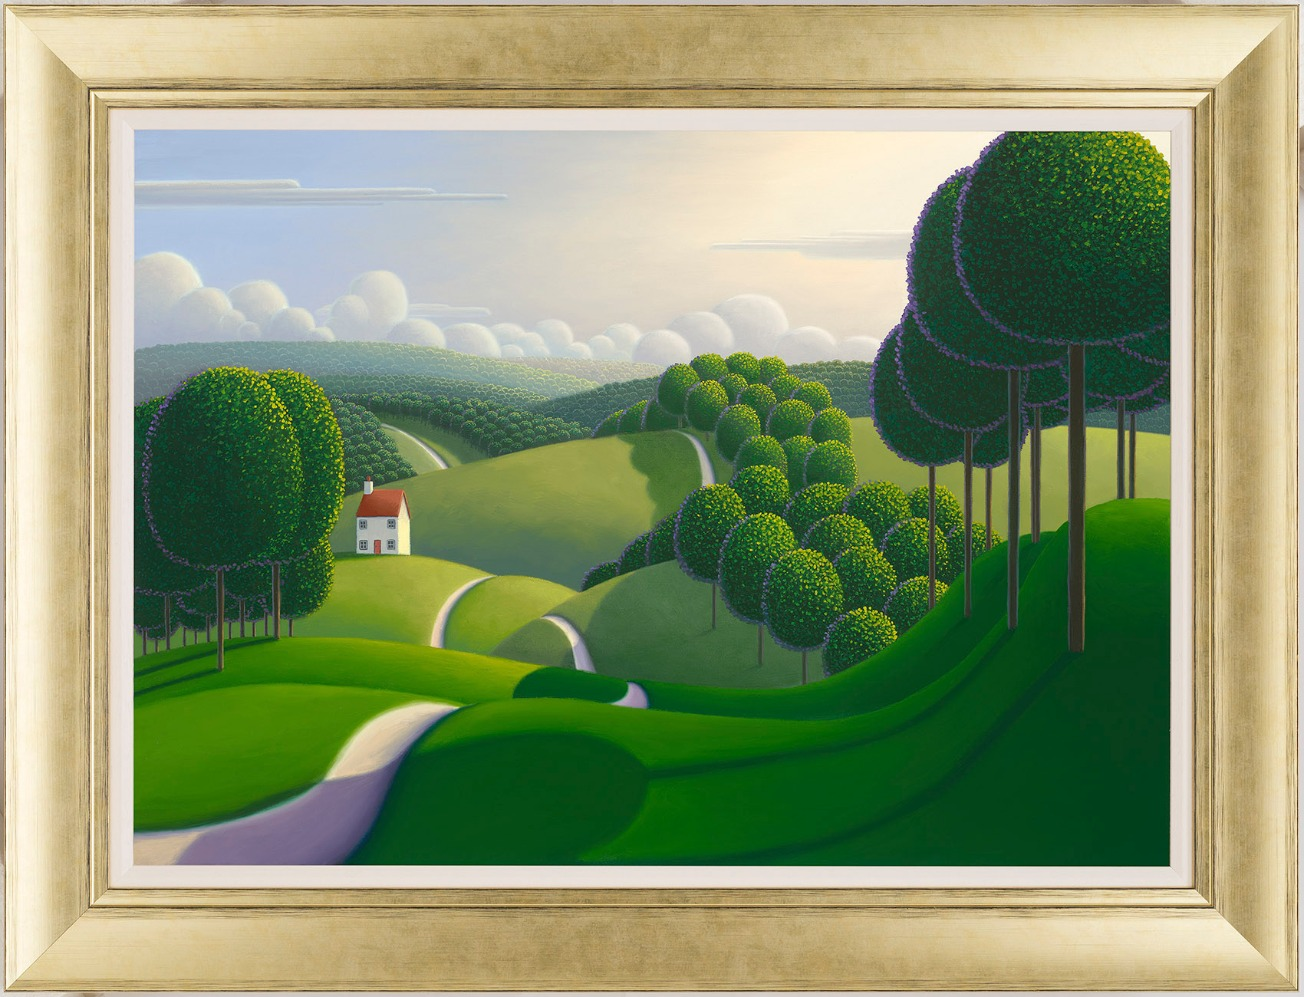 The Tree Lined Pathway by Paul Corfield, Landscape